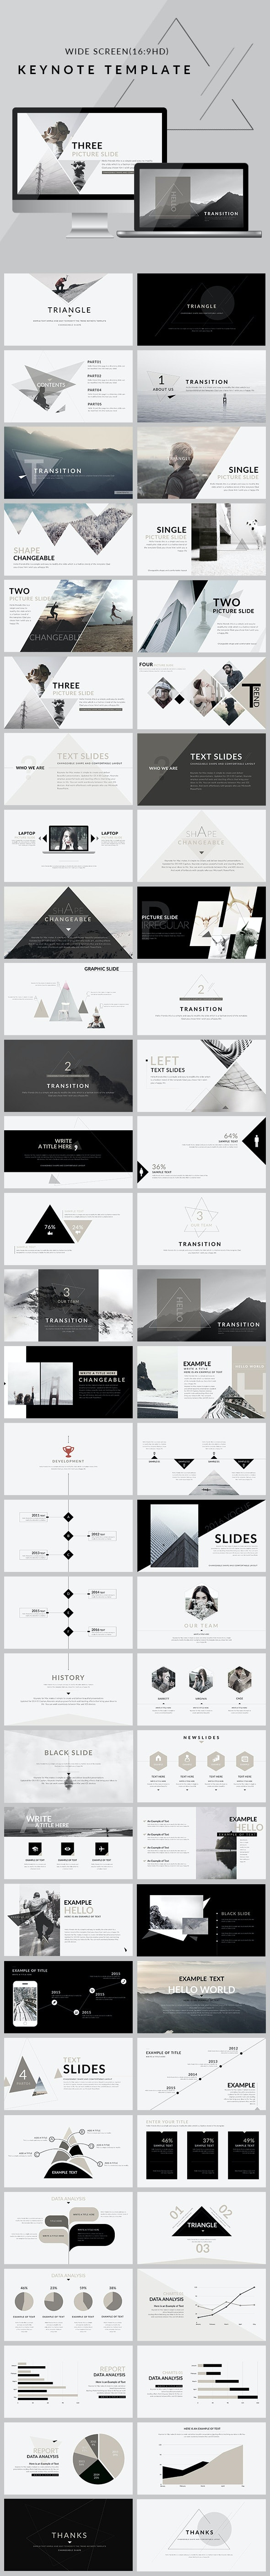 Triangle - Clean trend Keynote Template - Creative Keynote Templates